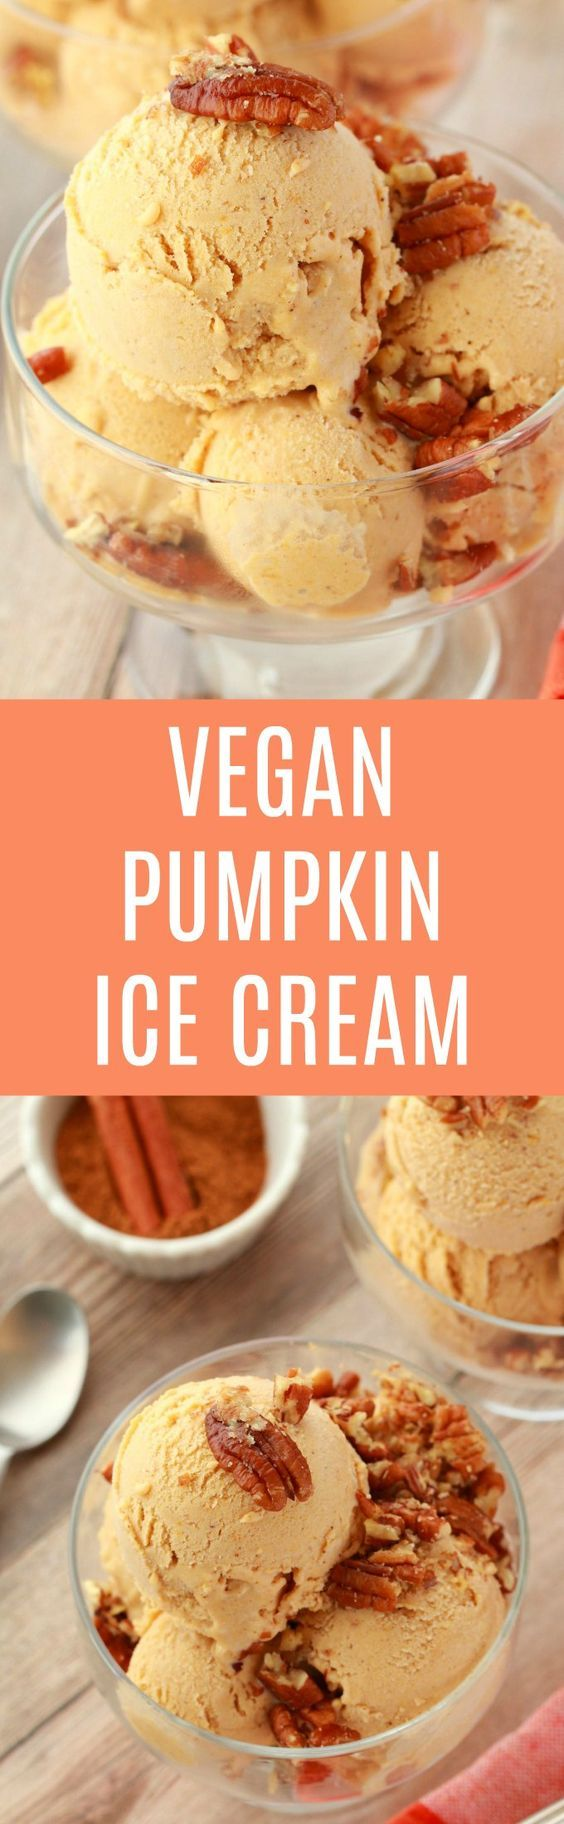 Smooth and perfectly textured pumpkin ice cream topped with pecan nuts. Loaded with pumpkin and pumpkin spice flavor, vegan and gluten-free.   lovingitvegan.com